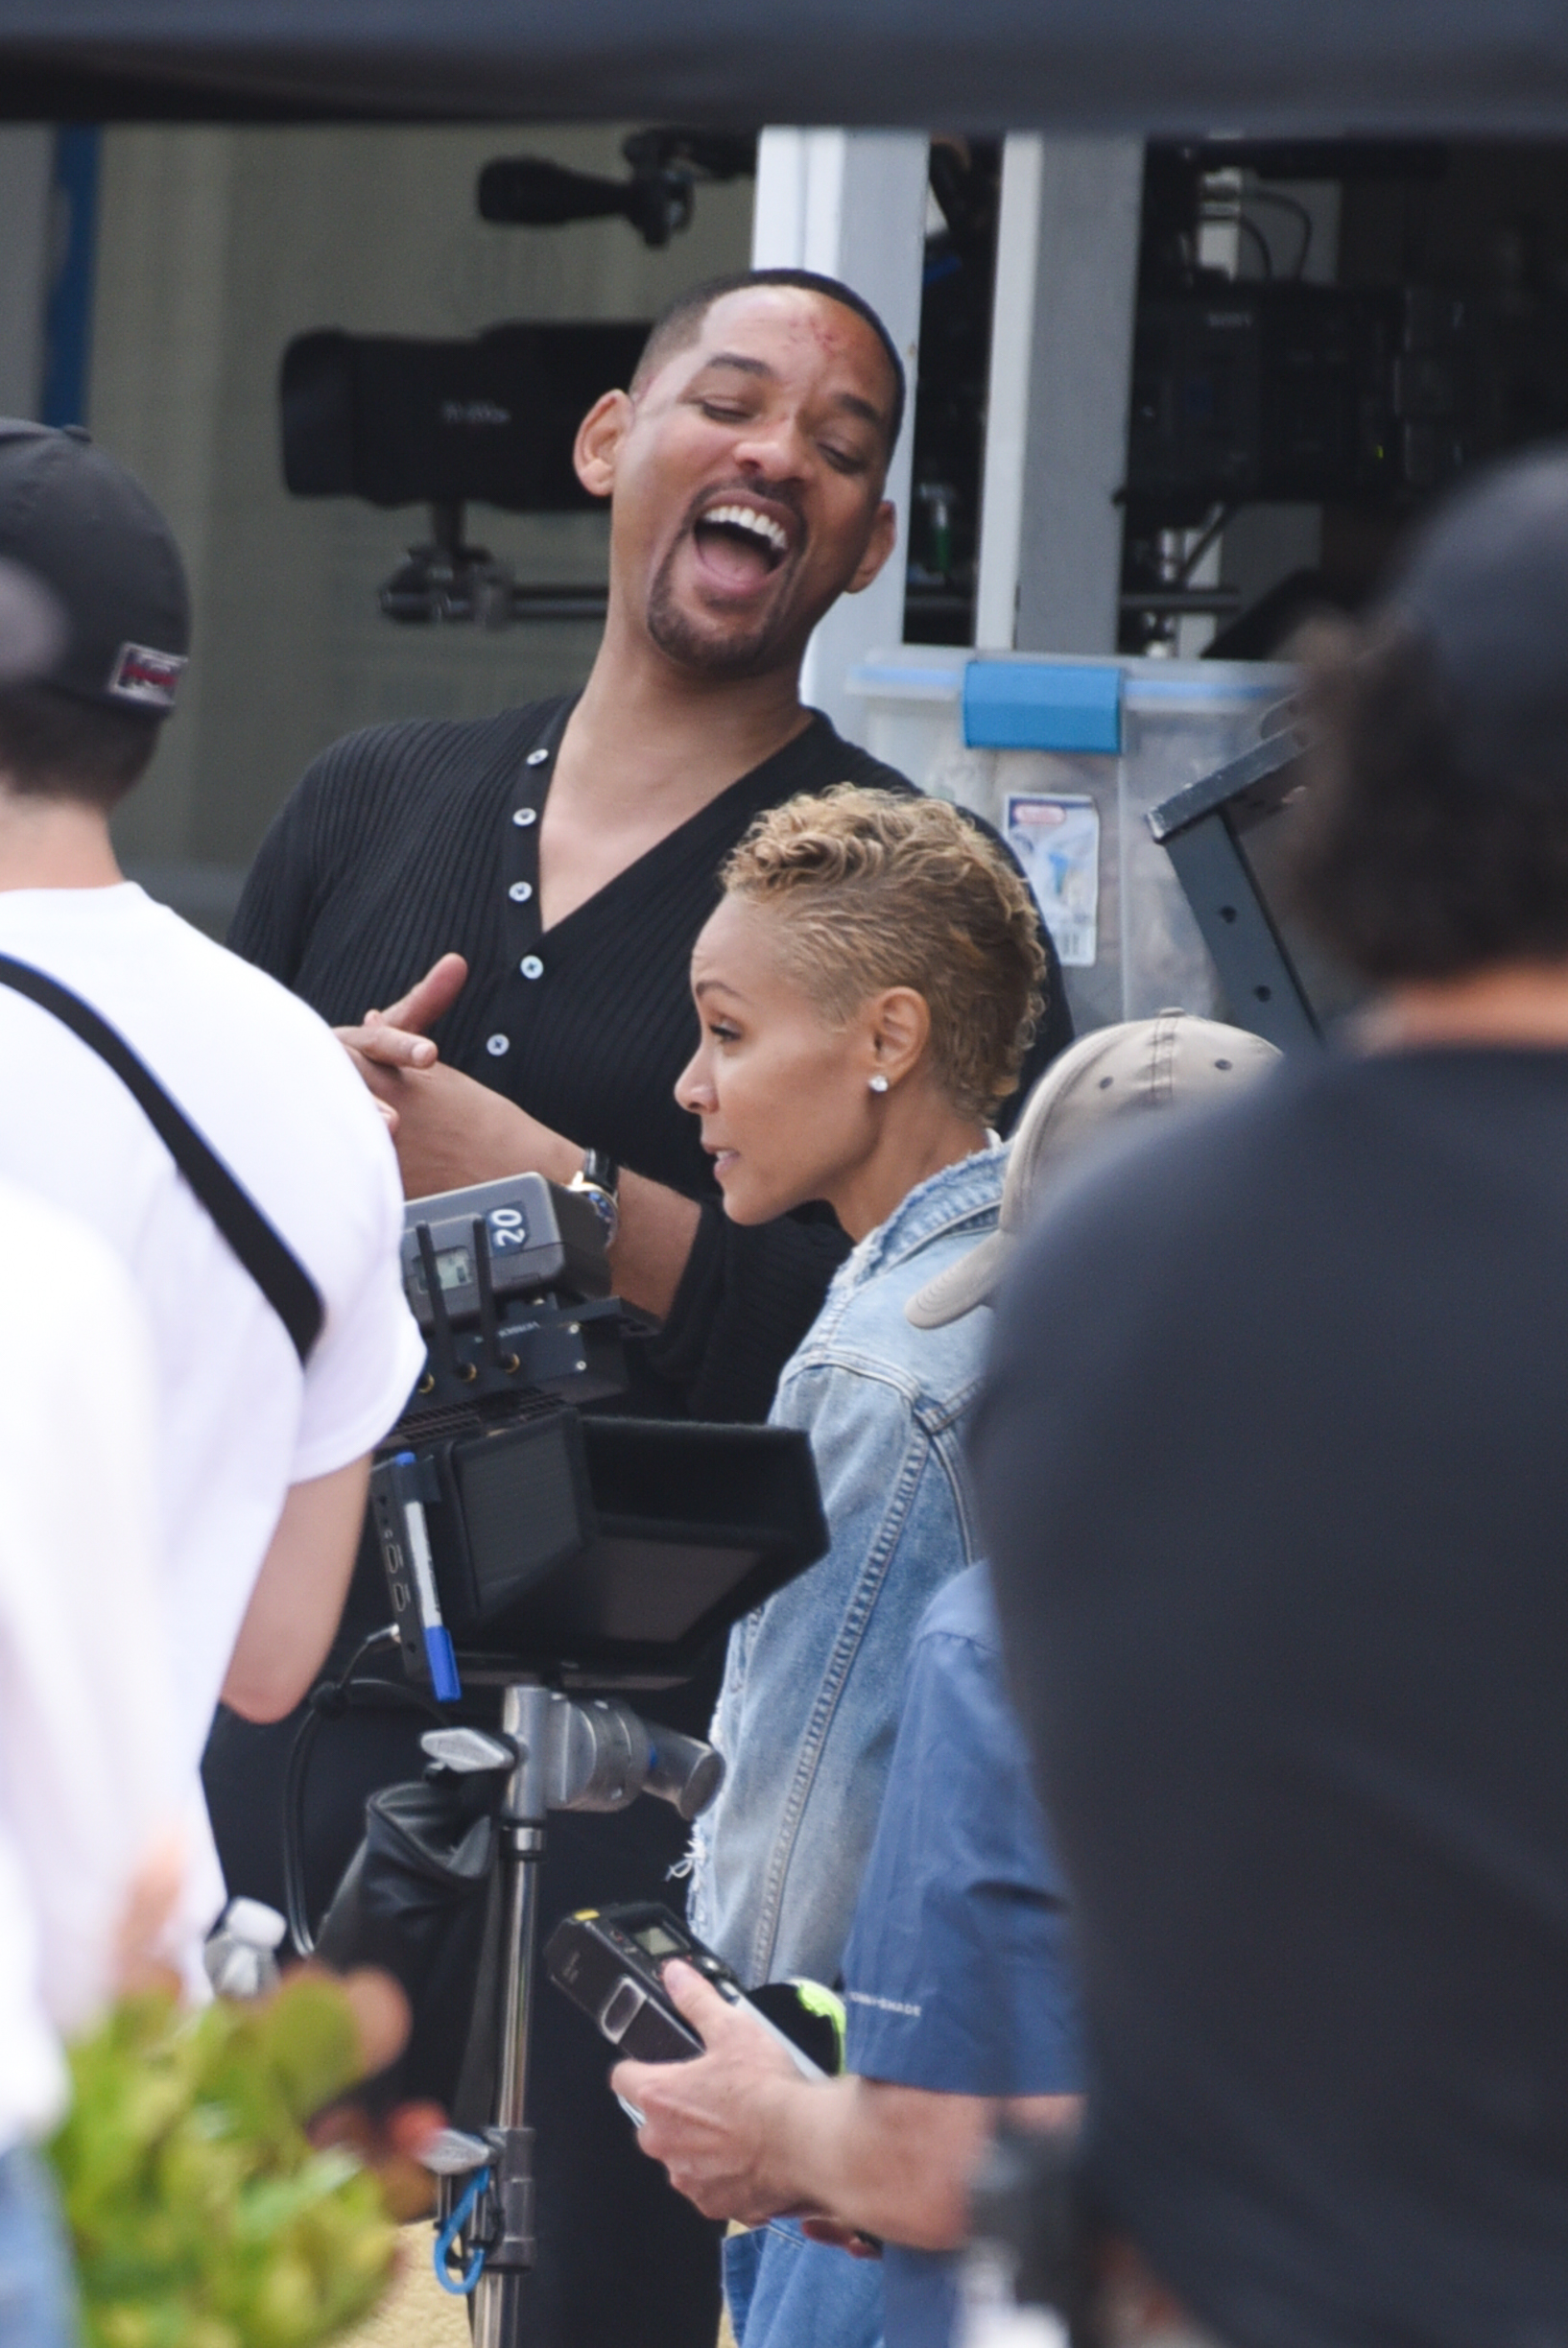 Will Smith Gets A Visit From Jada Pinkett Smith On Set Of Bad Boys 3 In Miami